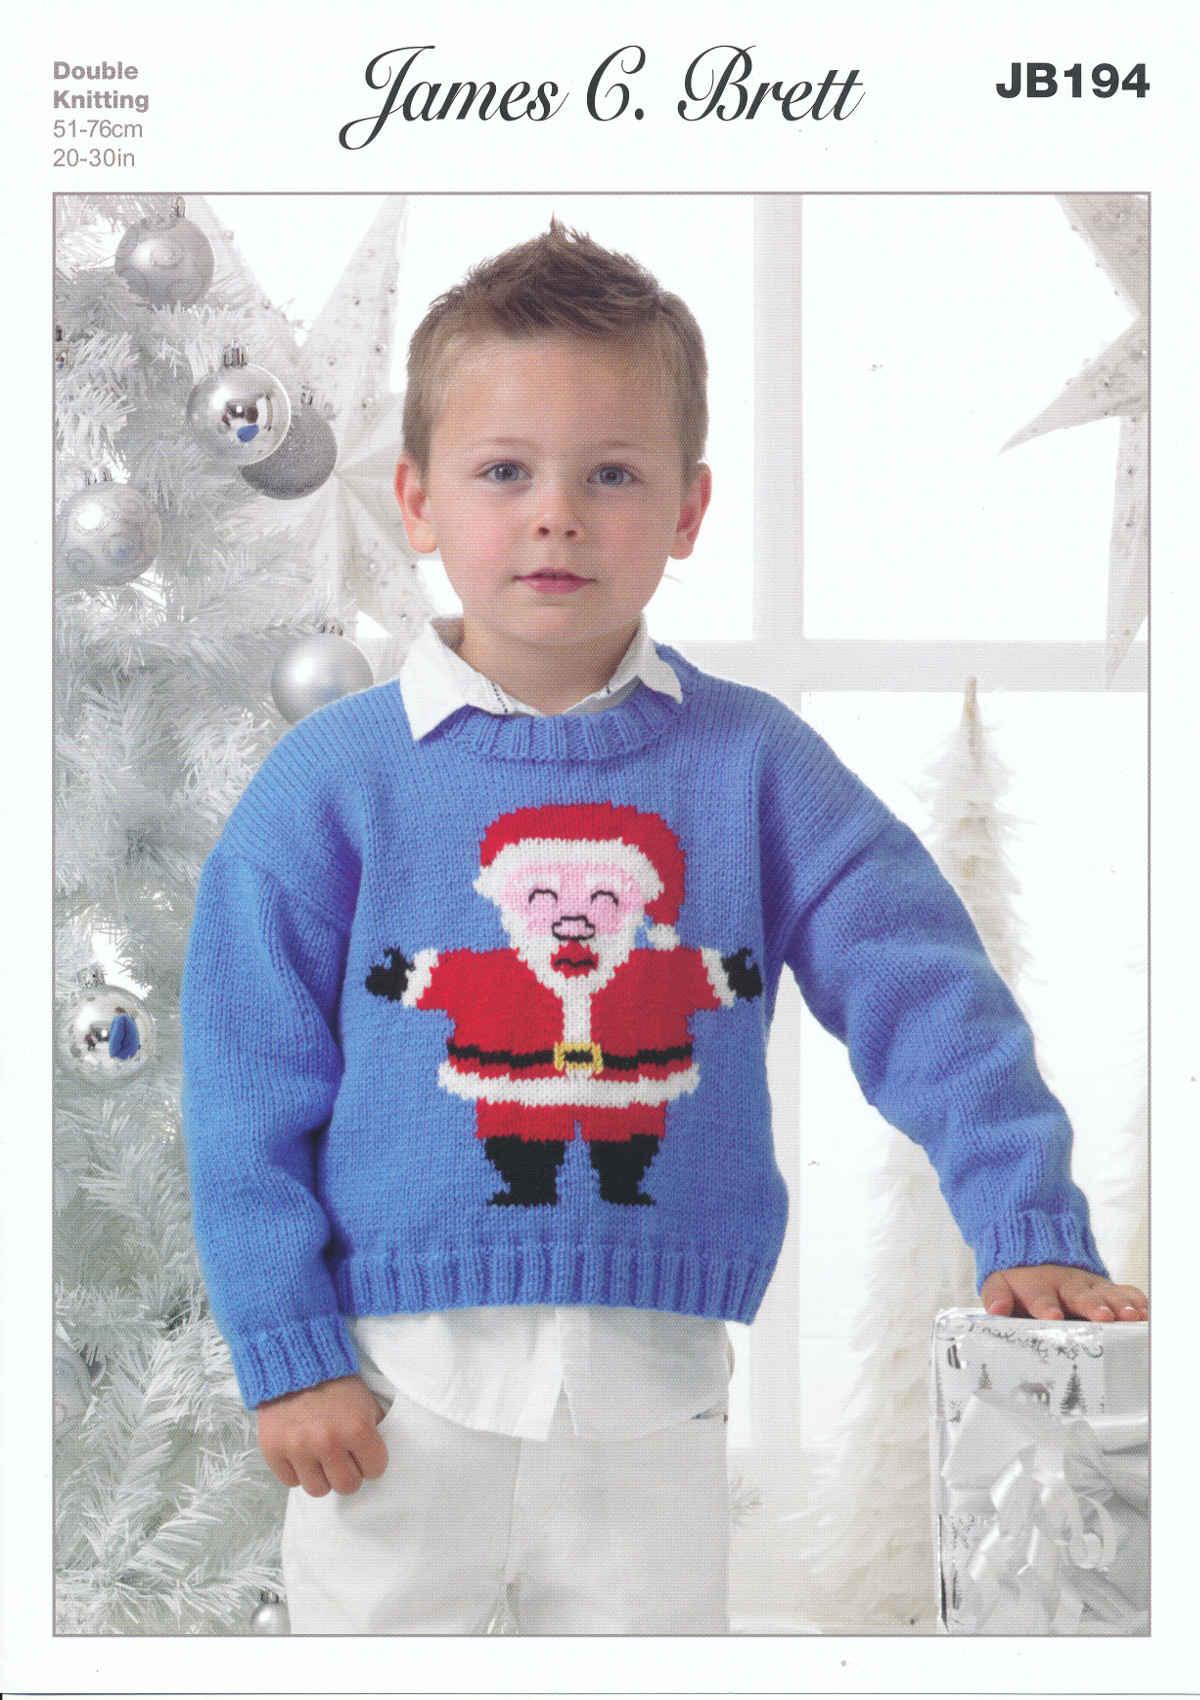 Knitting Patterns For Children s Christmas Jumpers : James Brett Double Tricot Modele Enfants No?l Pere No?l Pull pull JB194 eBay